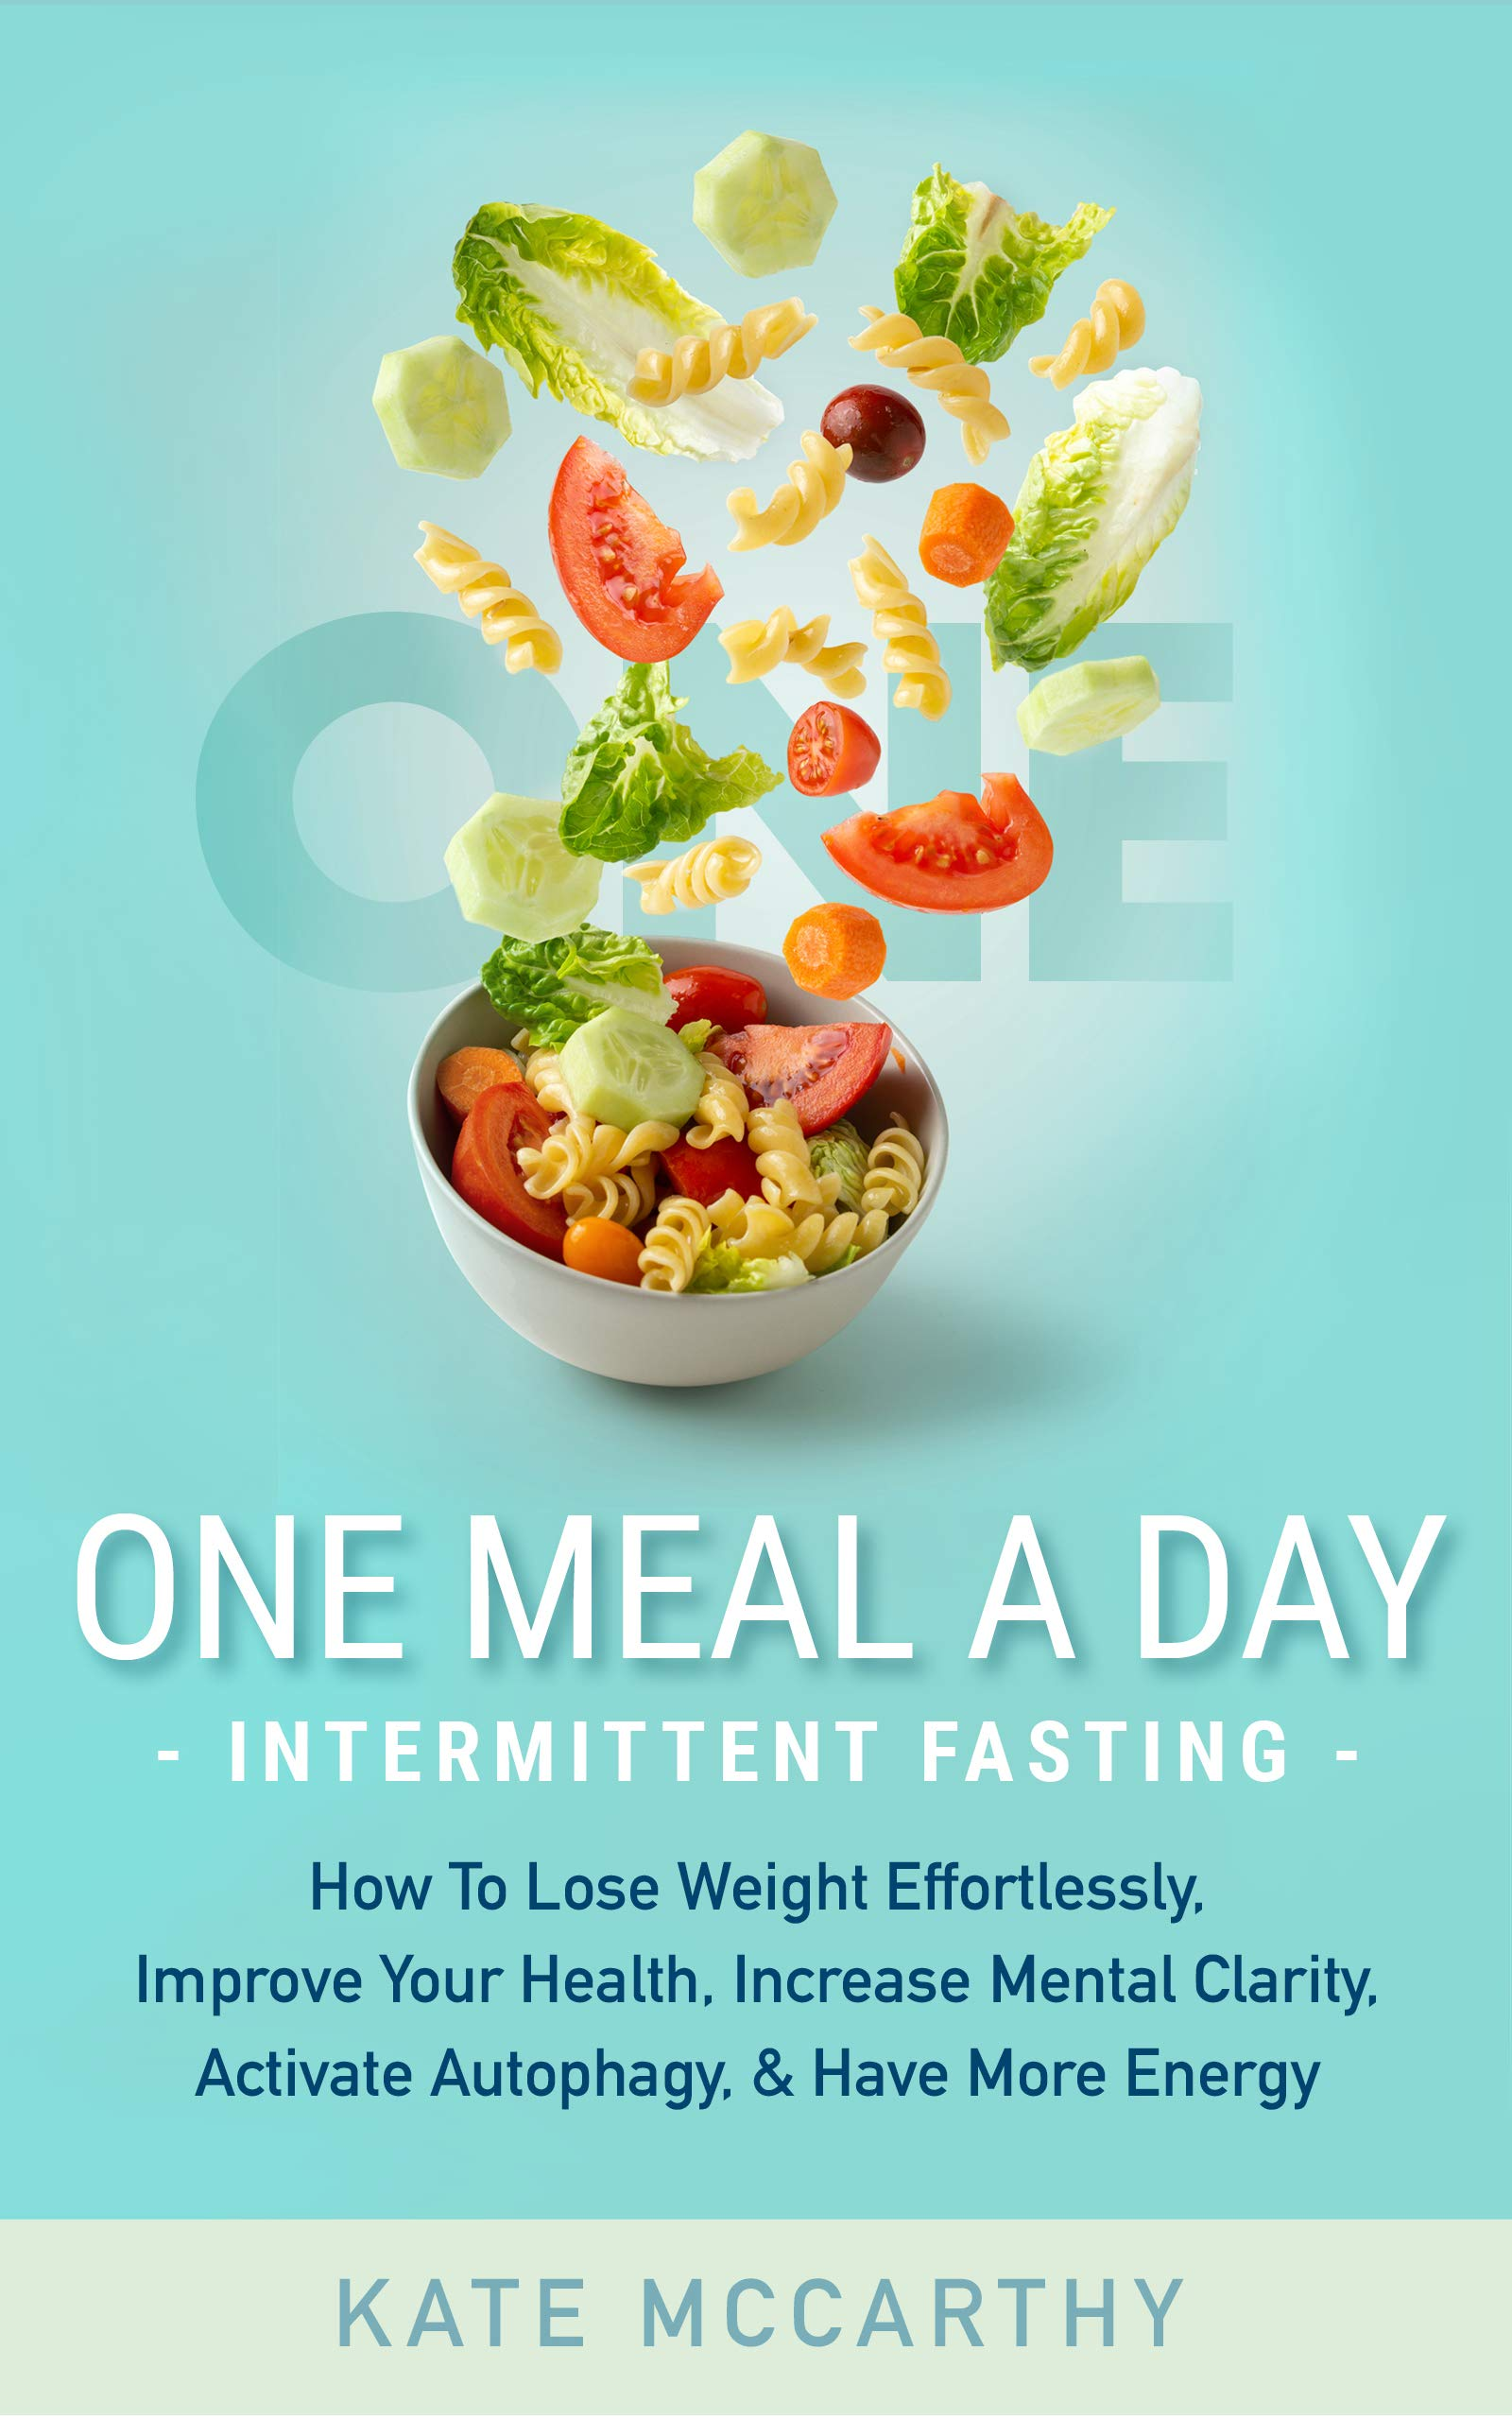 One Meal A Day Intermittent Fasting: How To Lose Weight Effortlessly, Improve Your Health, Increase Mental Clarity, Activa...